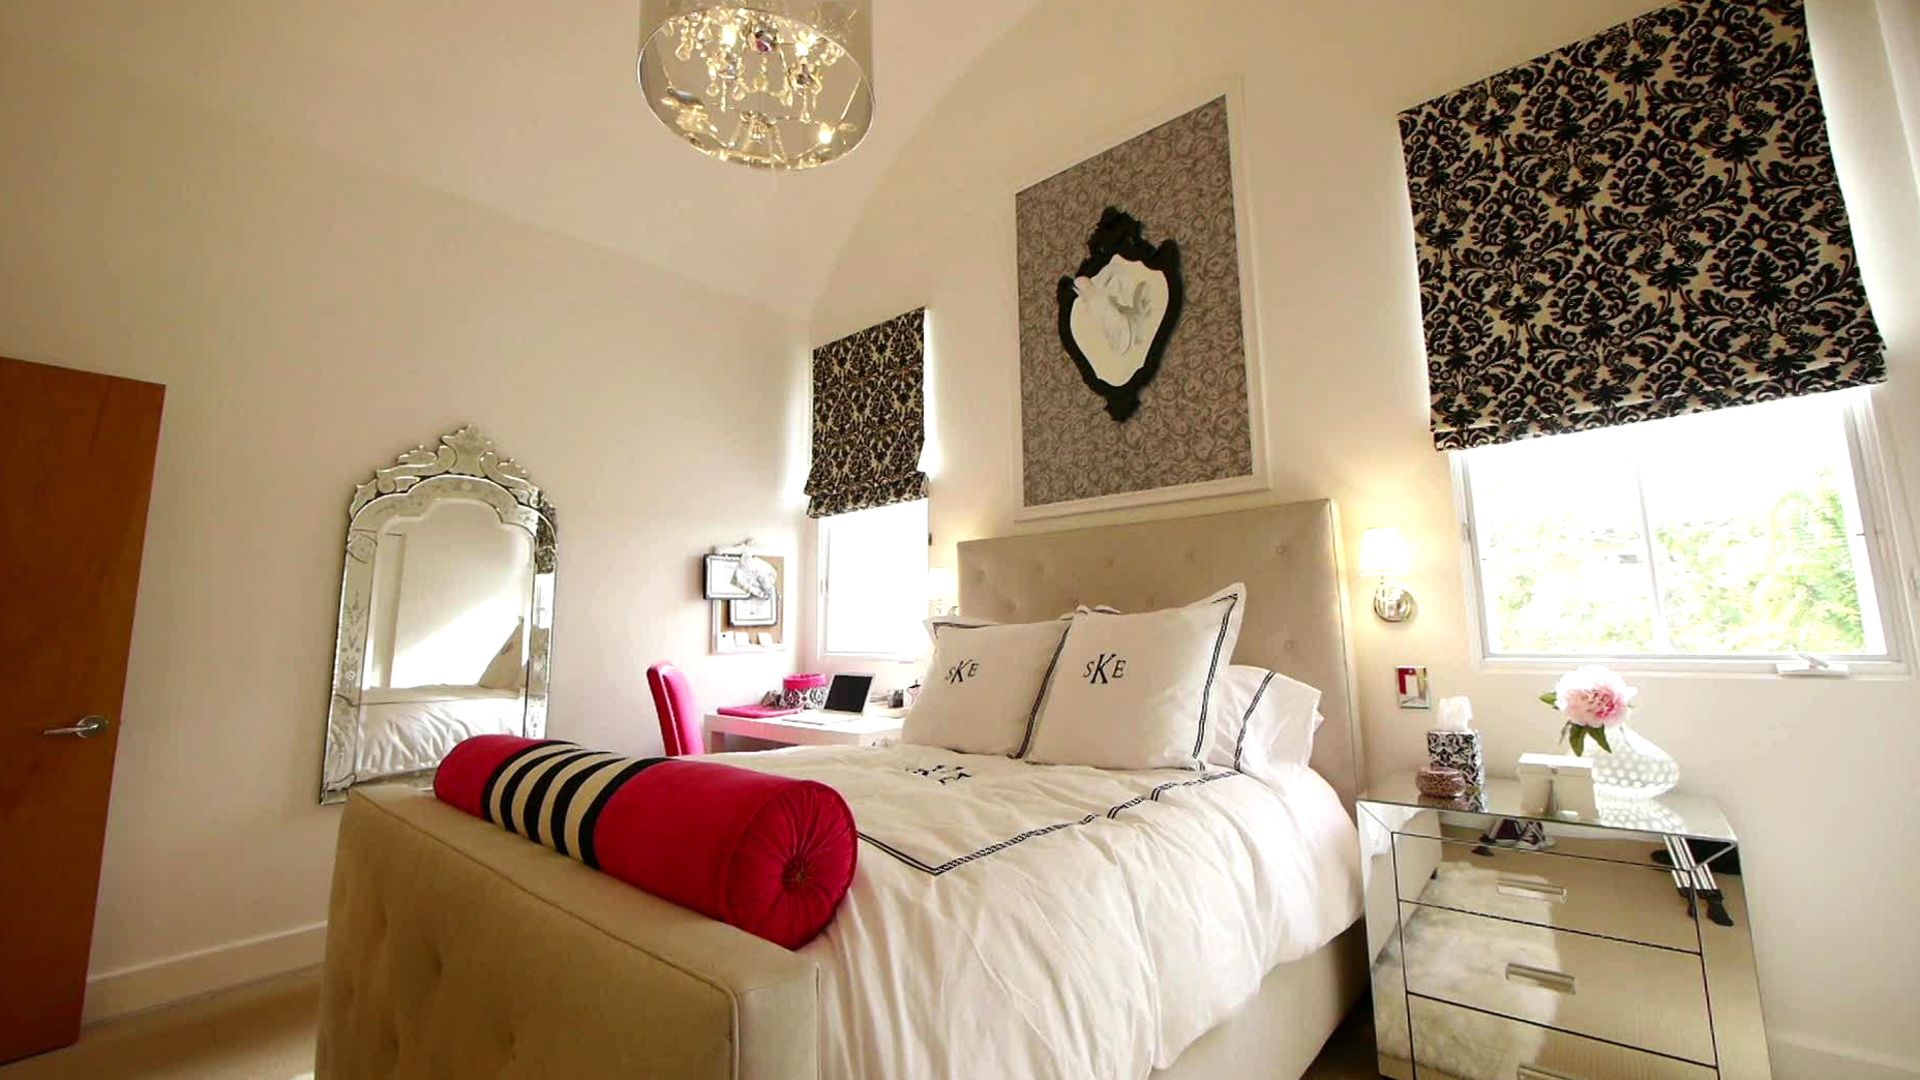 Teen Bedrooms Ideas For Cool Bedroom Ideas For Teens